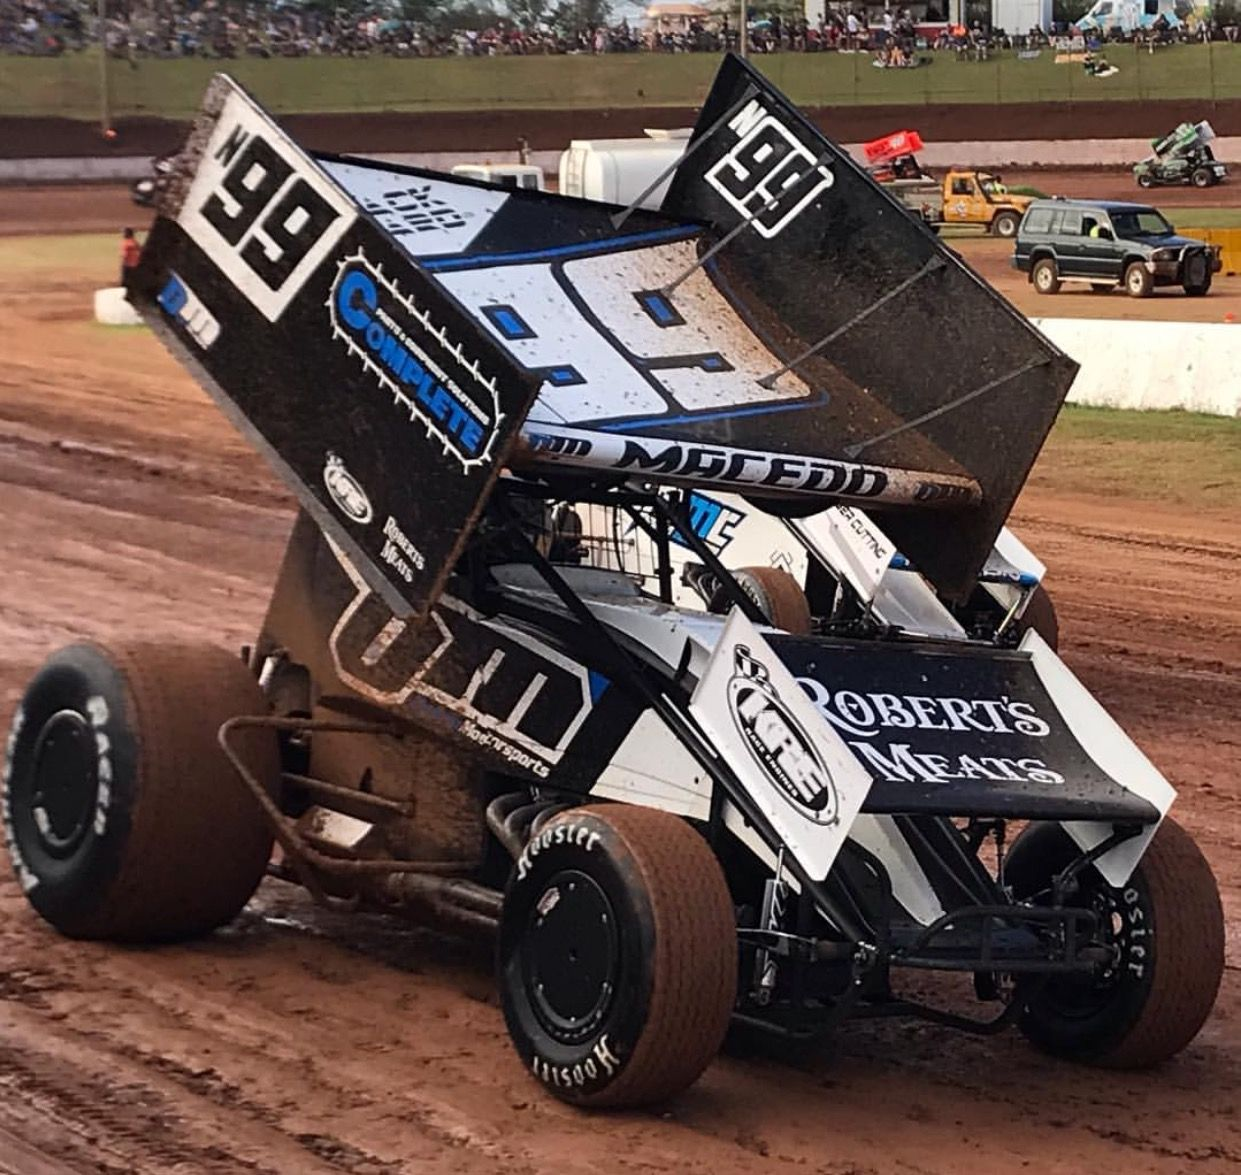 Dirt Track Cars By Brock Robertson On Sprint Cars / Dirt